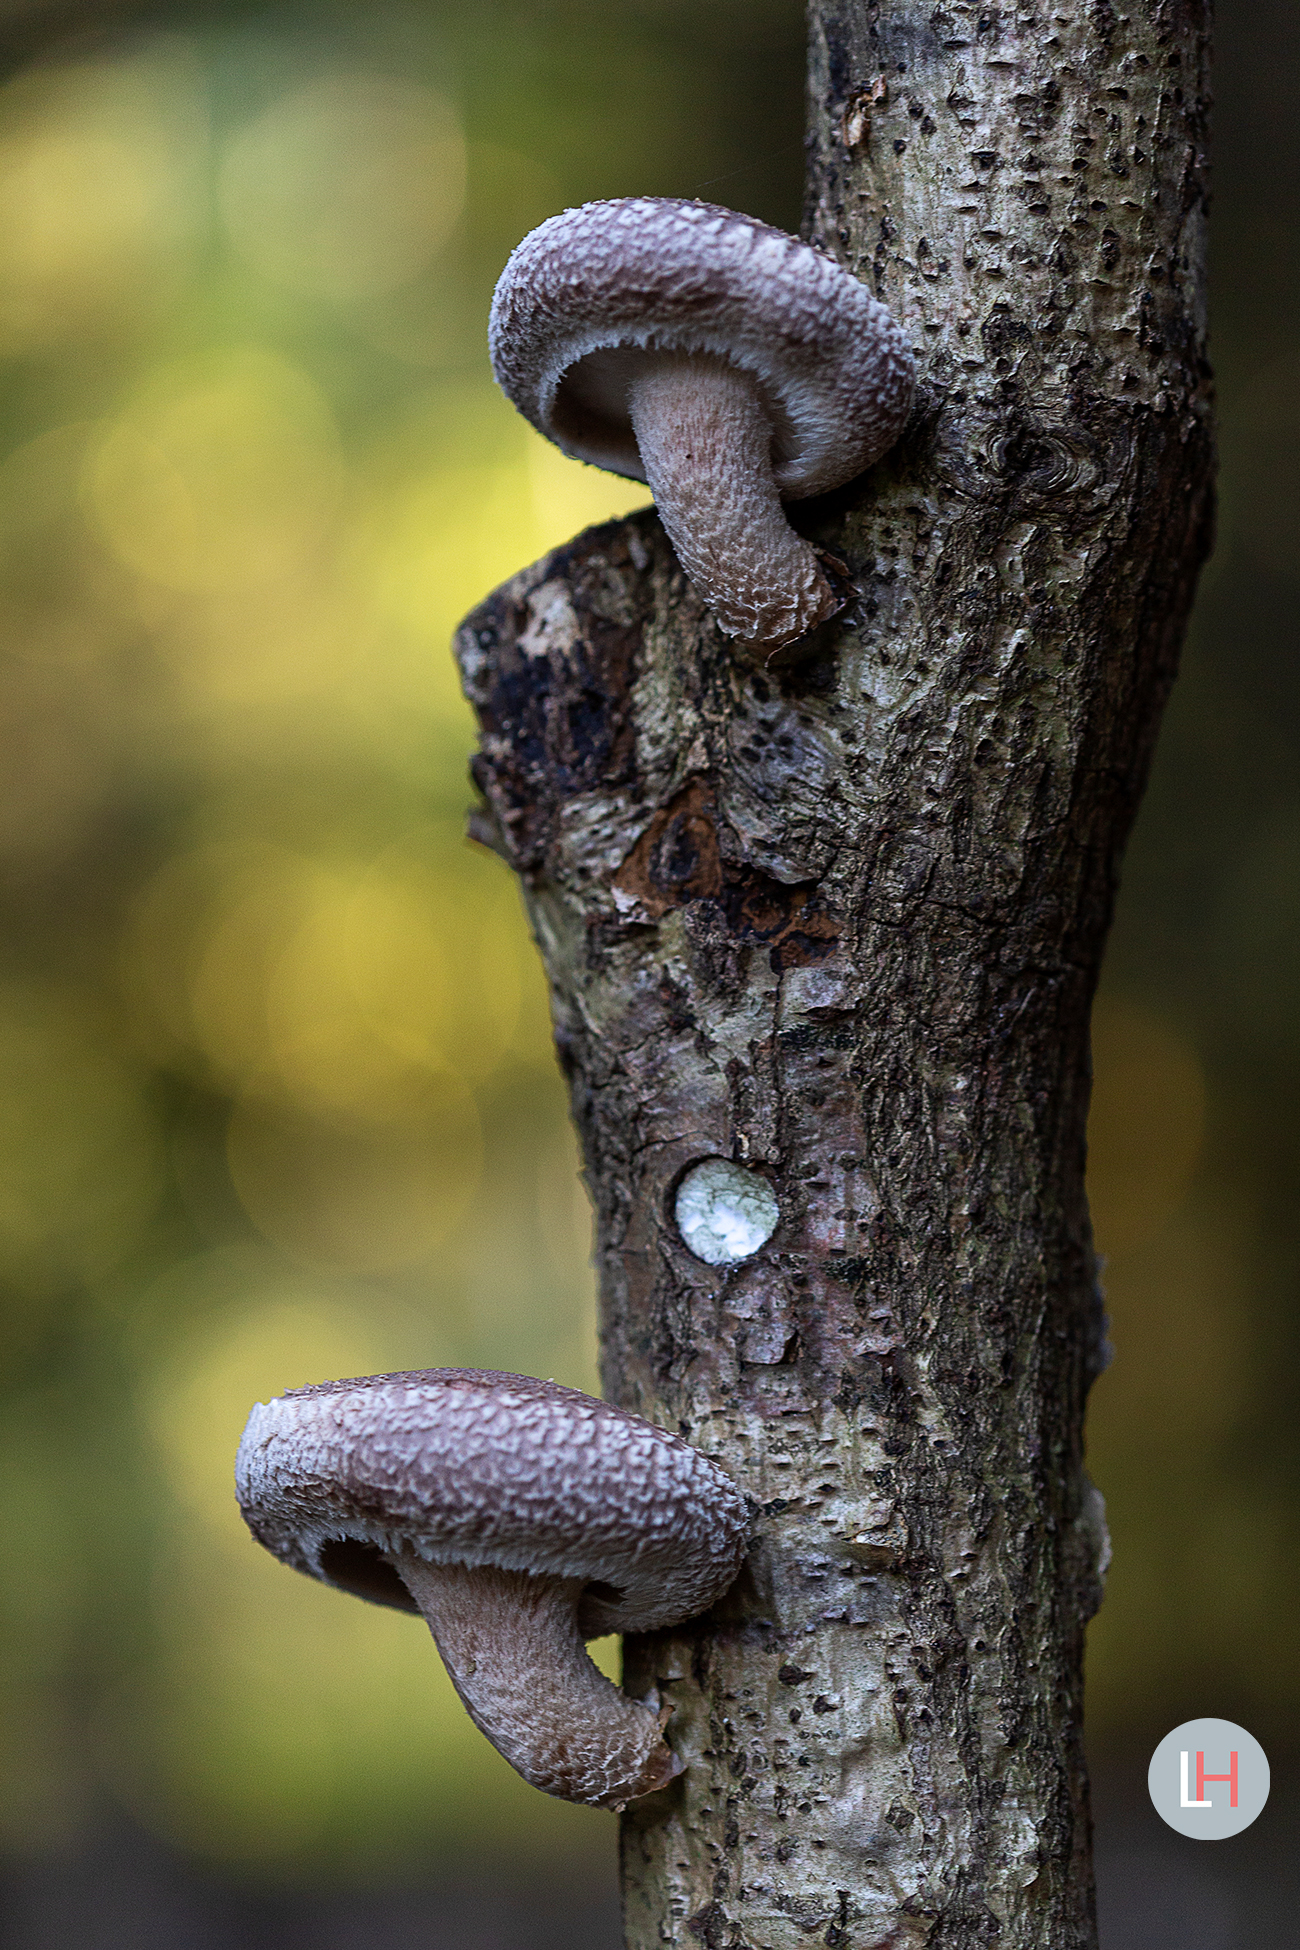 Shiitake Grower Photo serie Loes Heerink